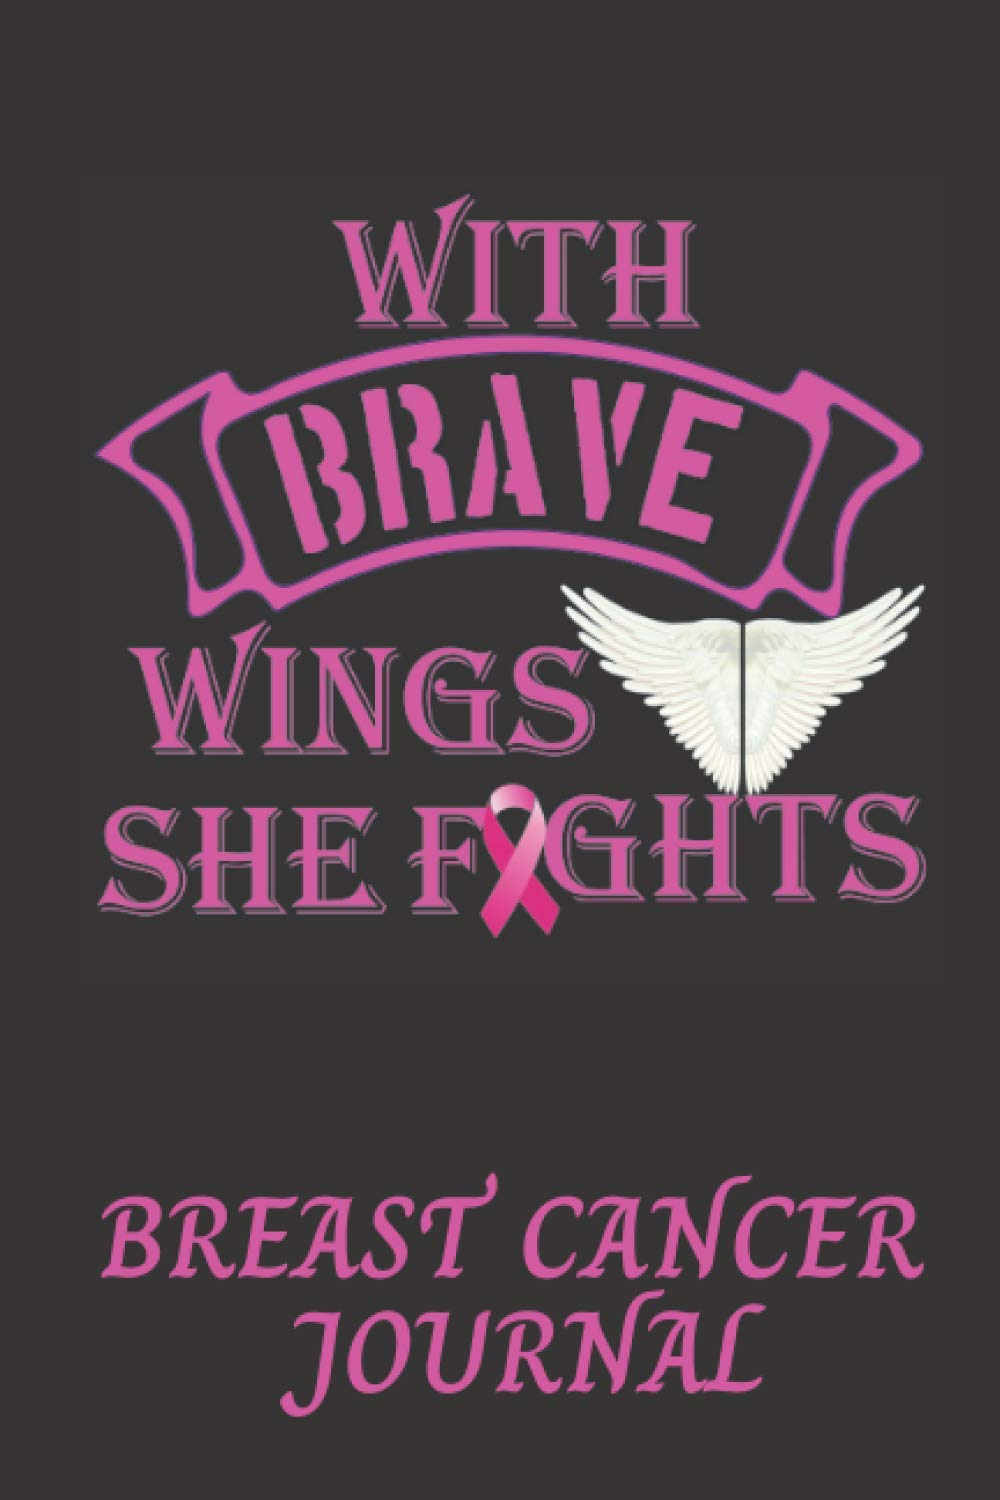 Breast Cancer Journal 20 Pages Lined With Inspirational quotes ...